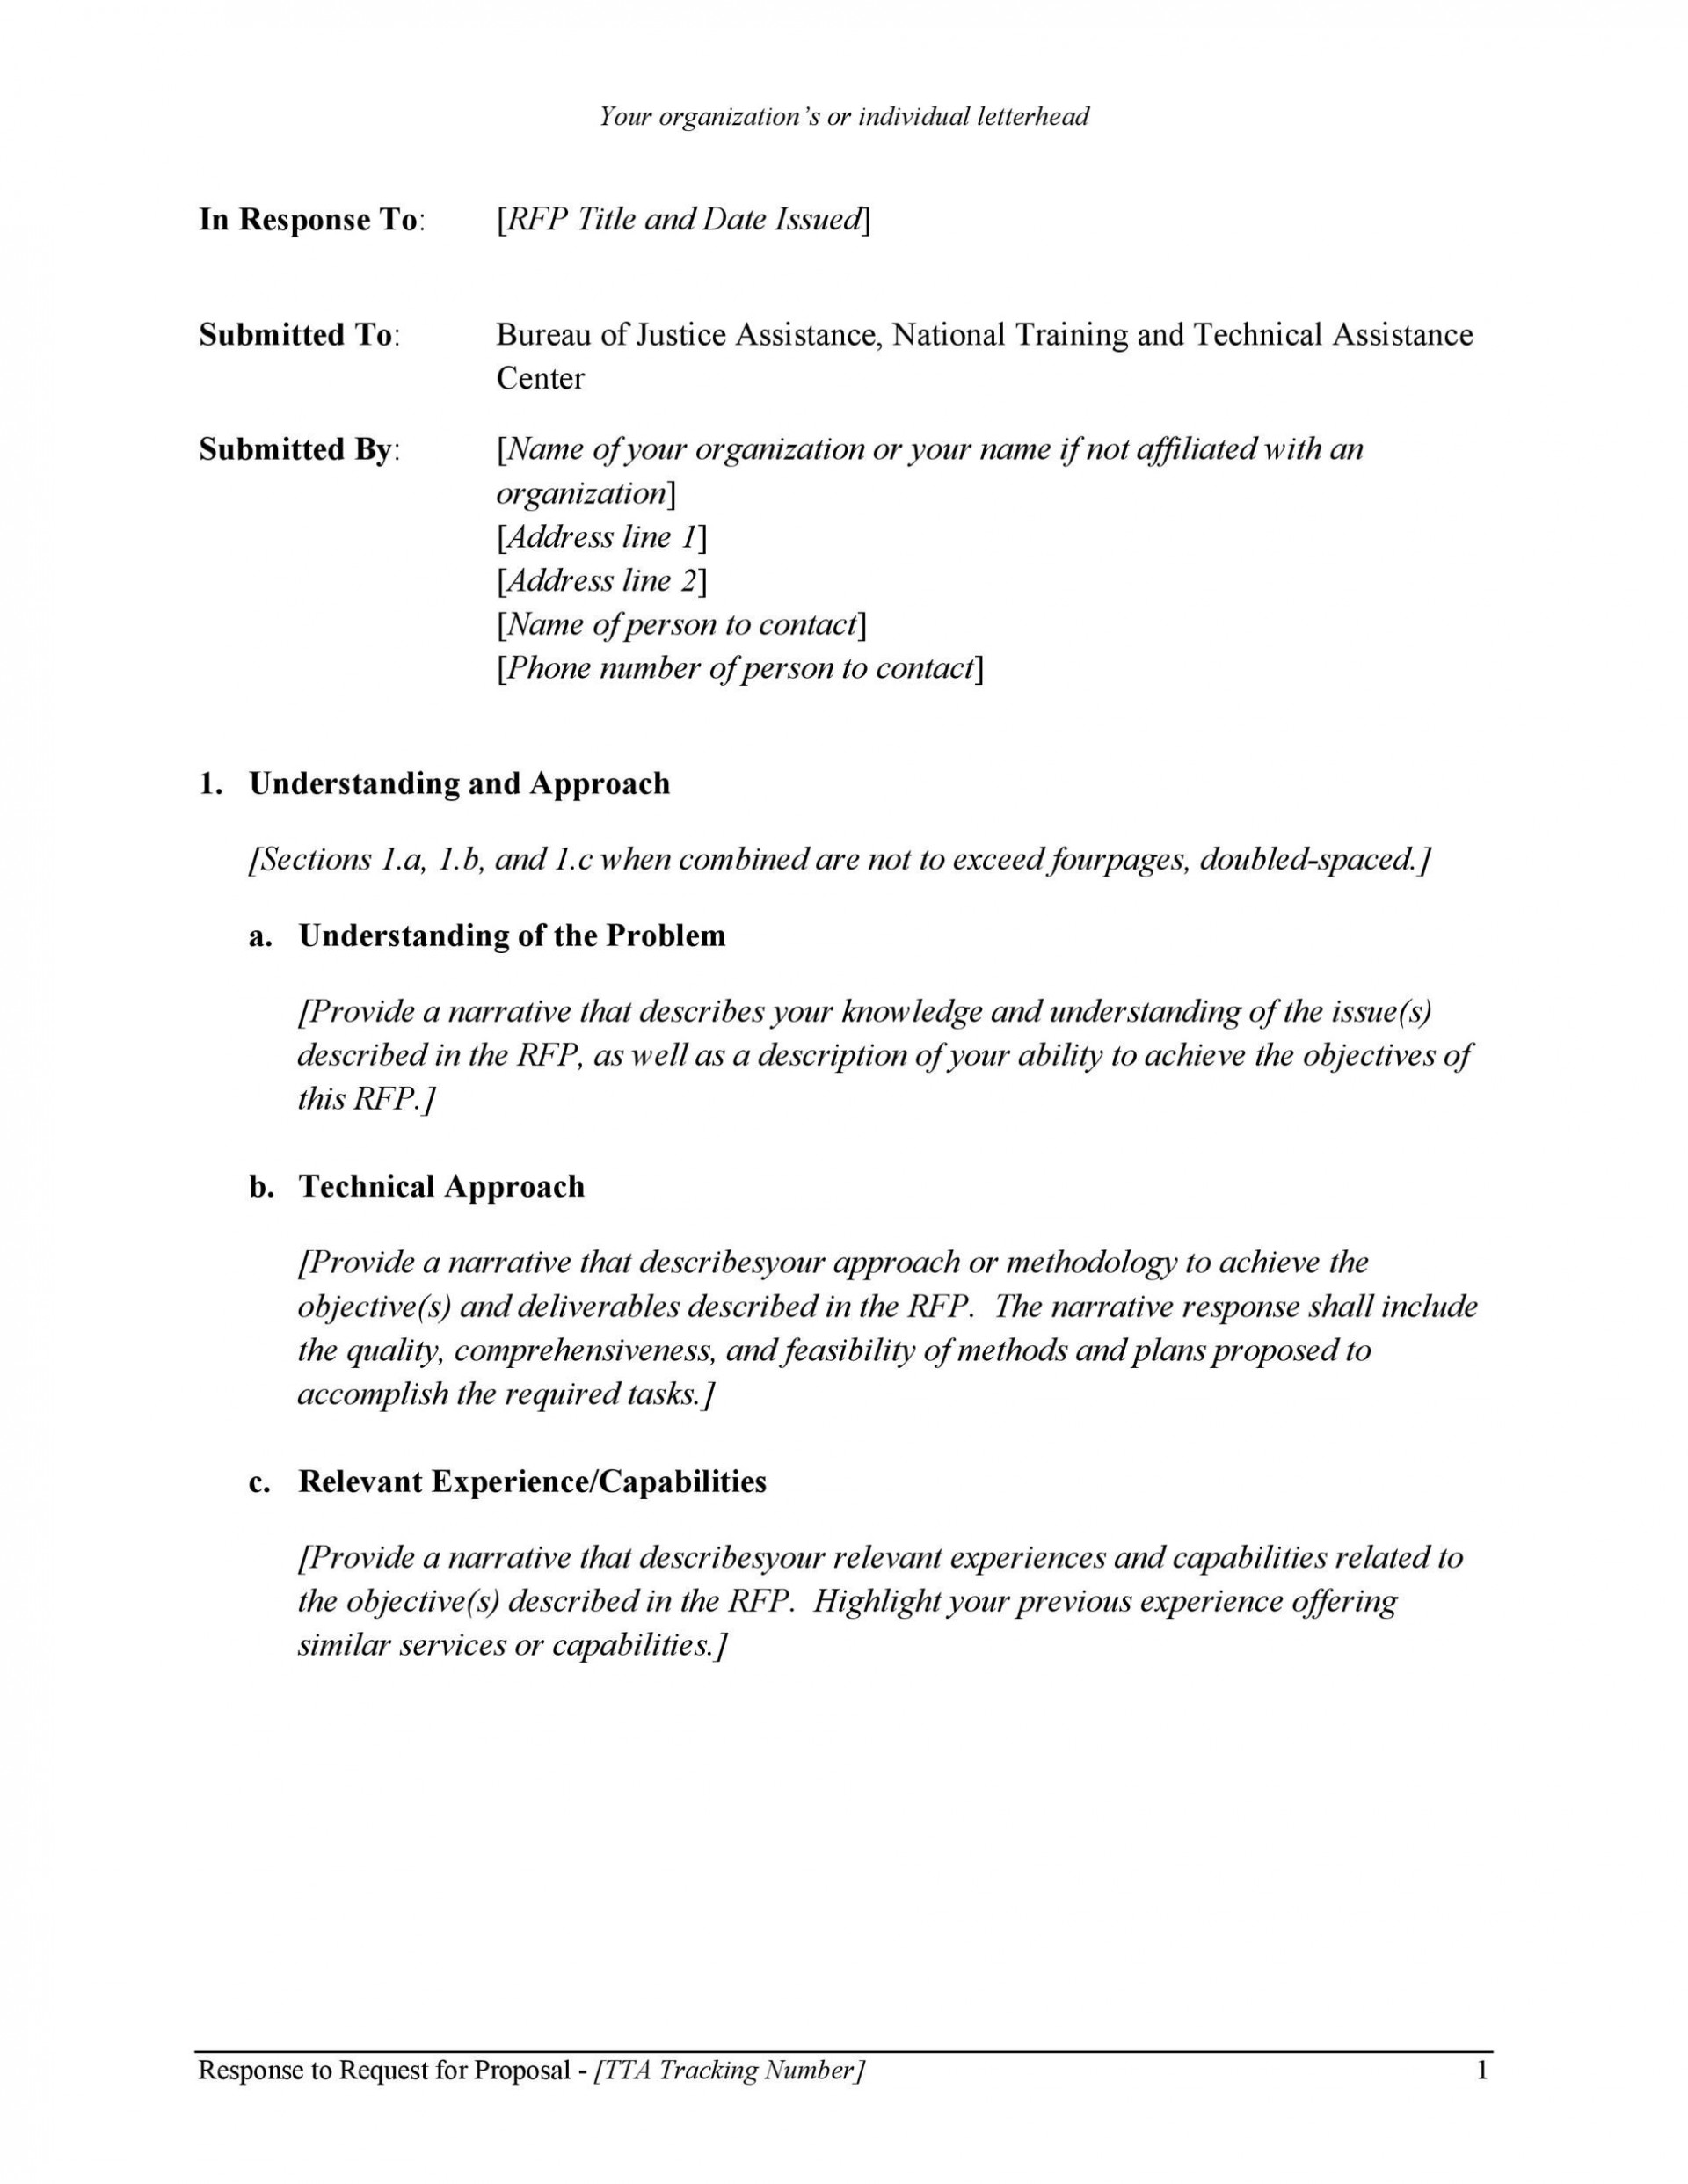 006 Amazing Request For Proposal Response Word Template Image 1920